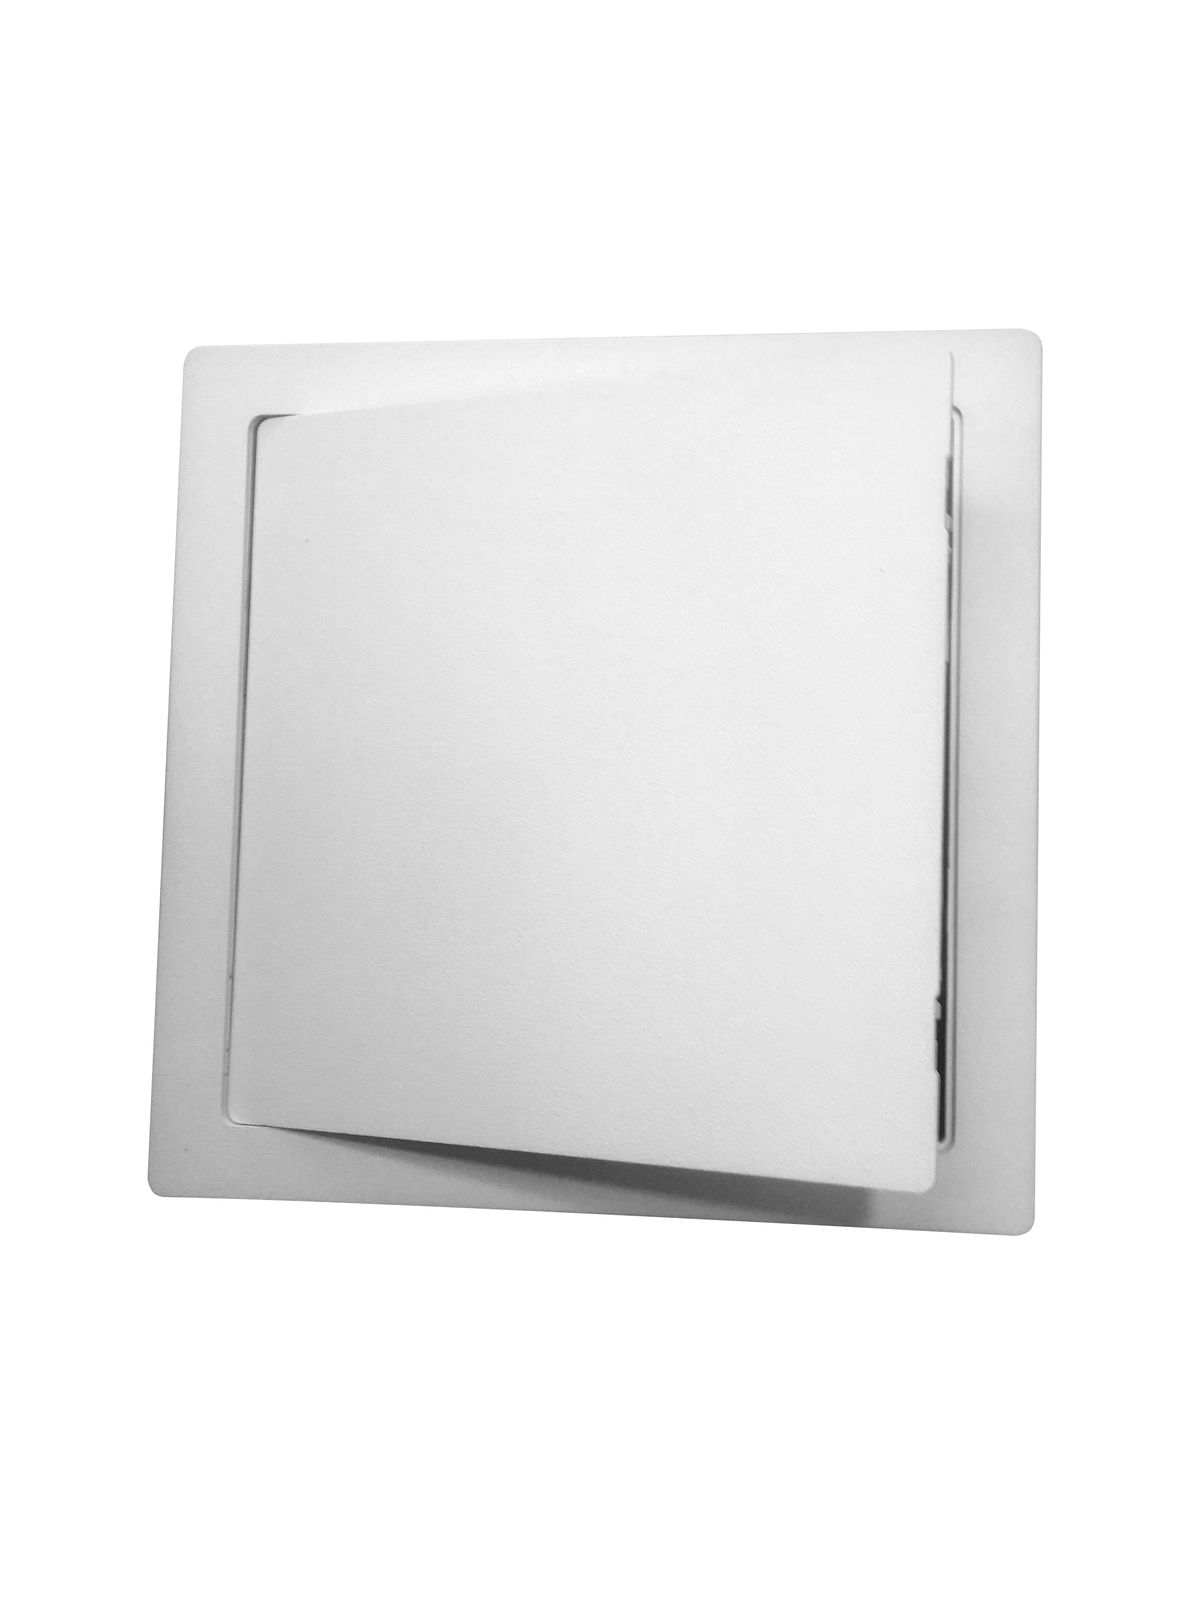 White Plastic Access Panel Inspection Hatch Revision Door 200mm x 200mm (8